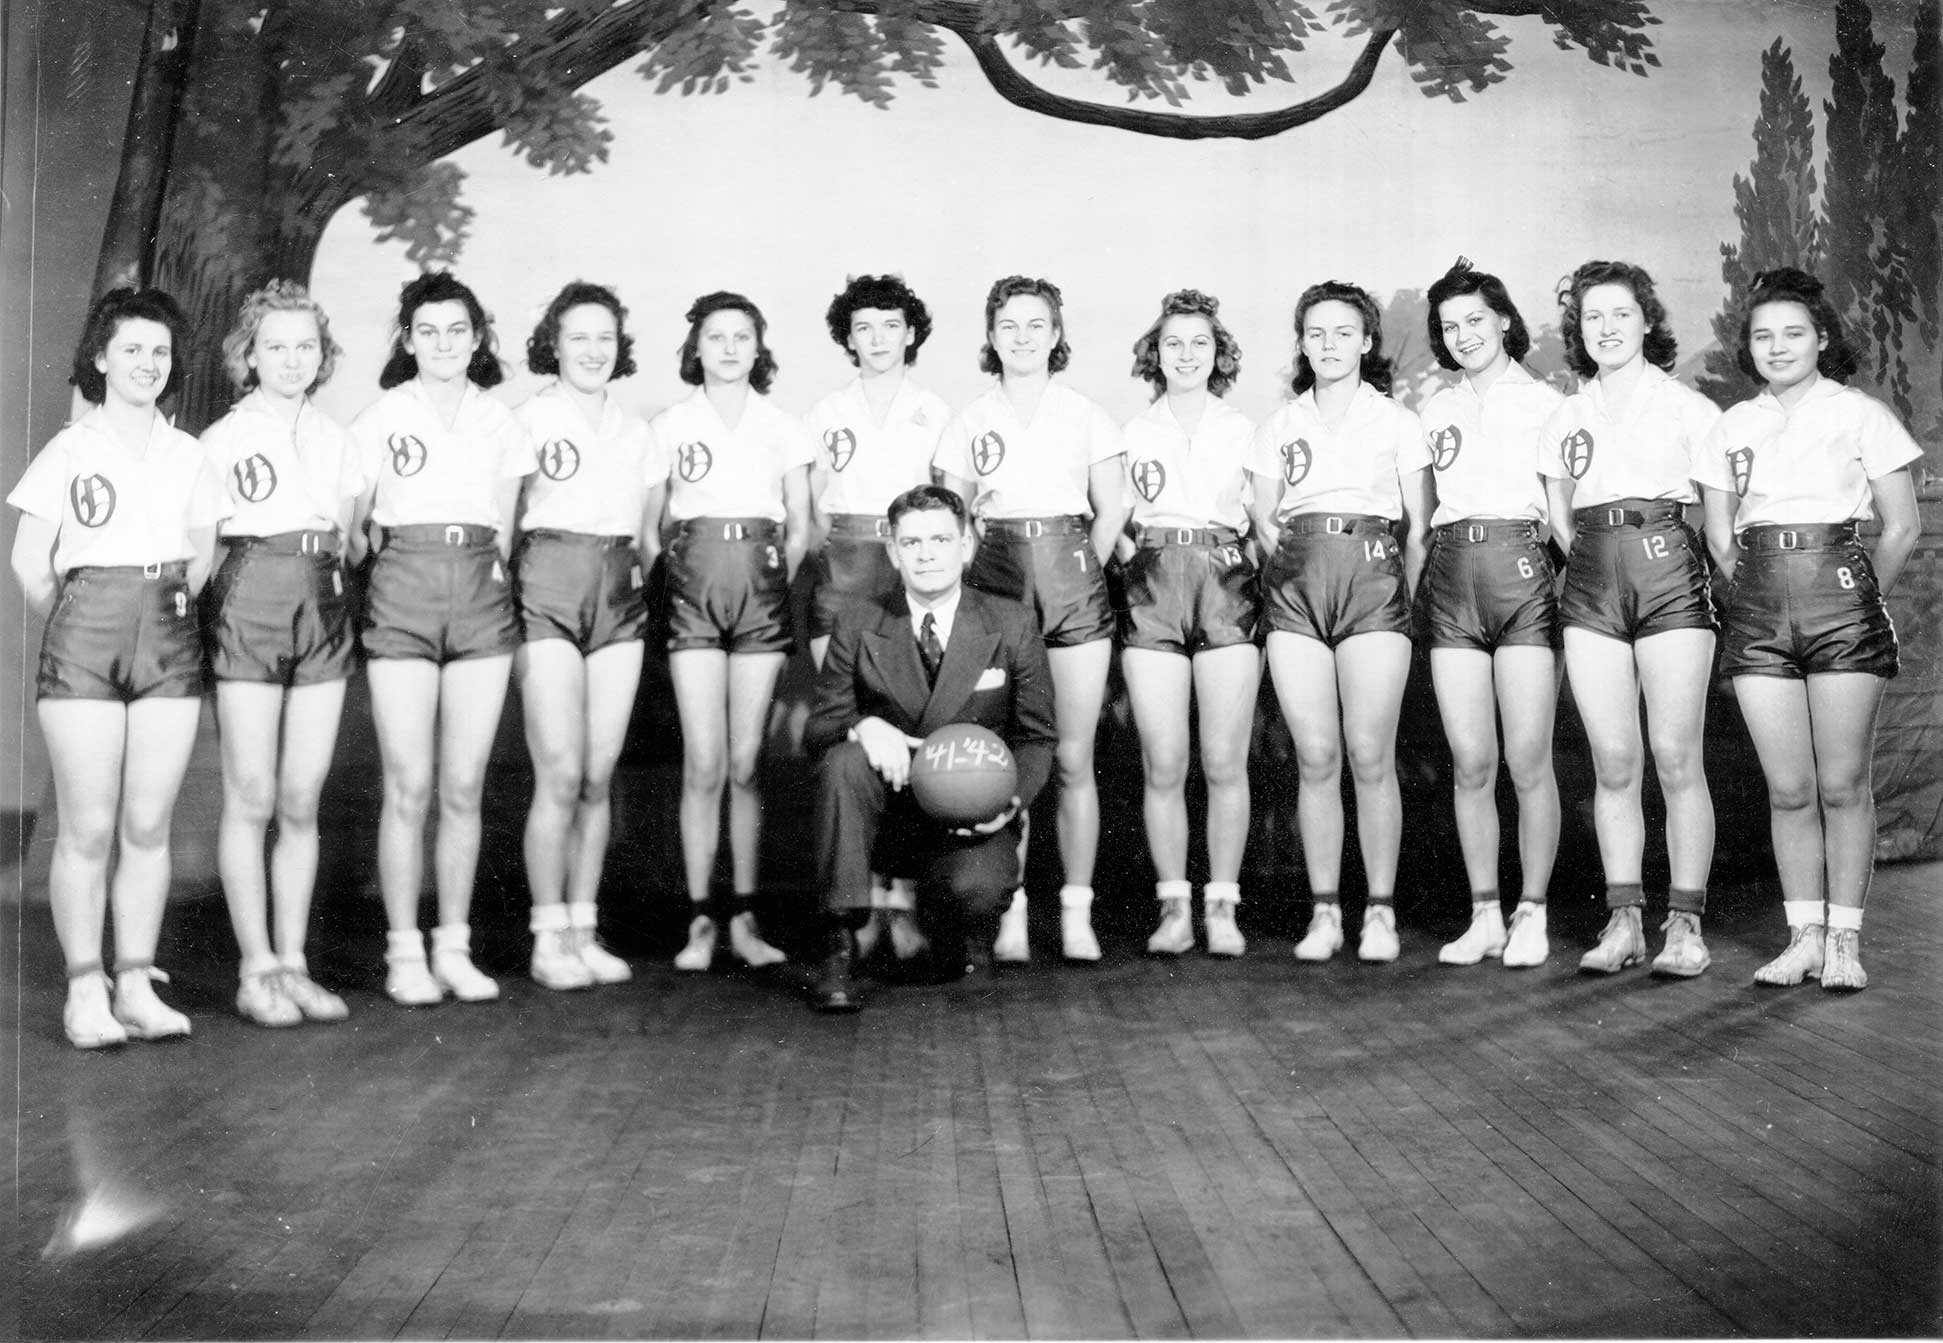 Obion High School Girls' Basketball 1941-42